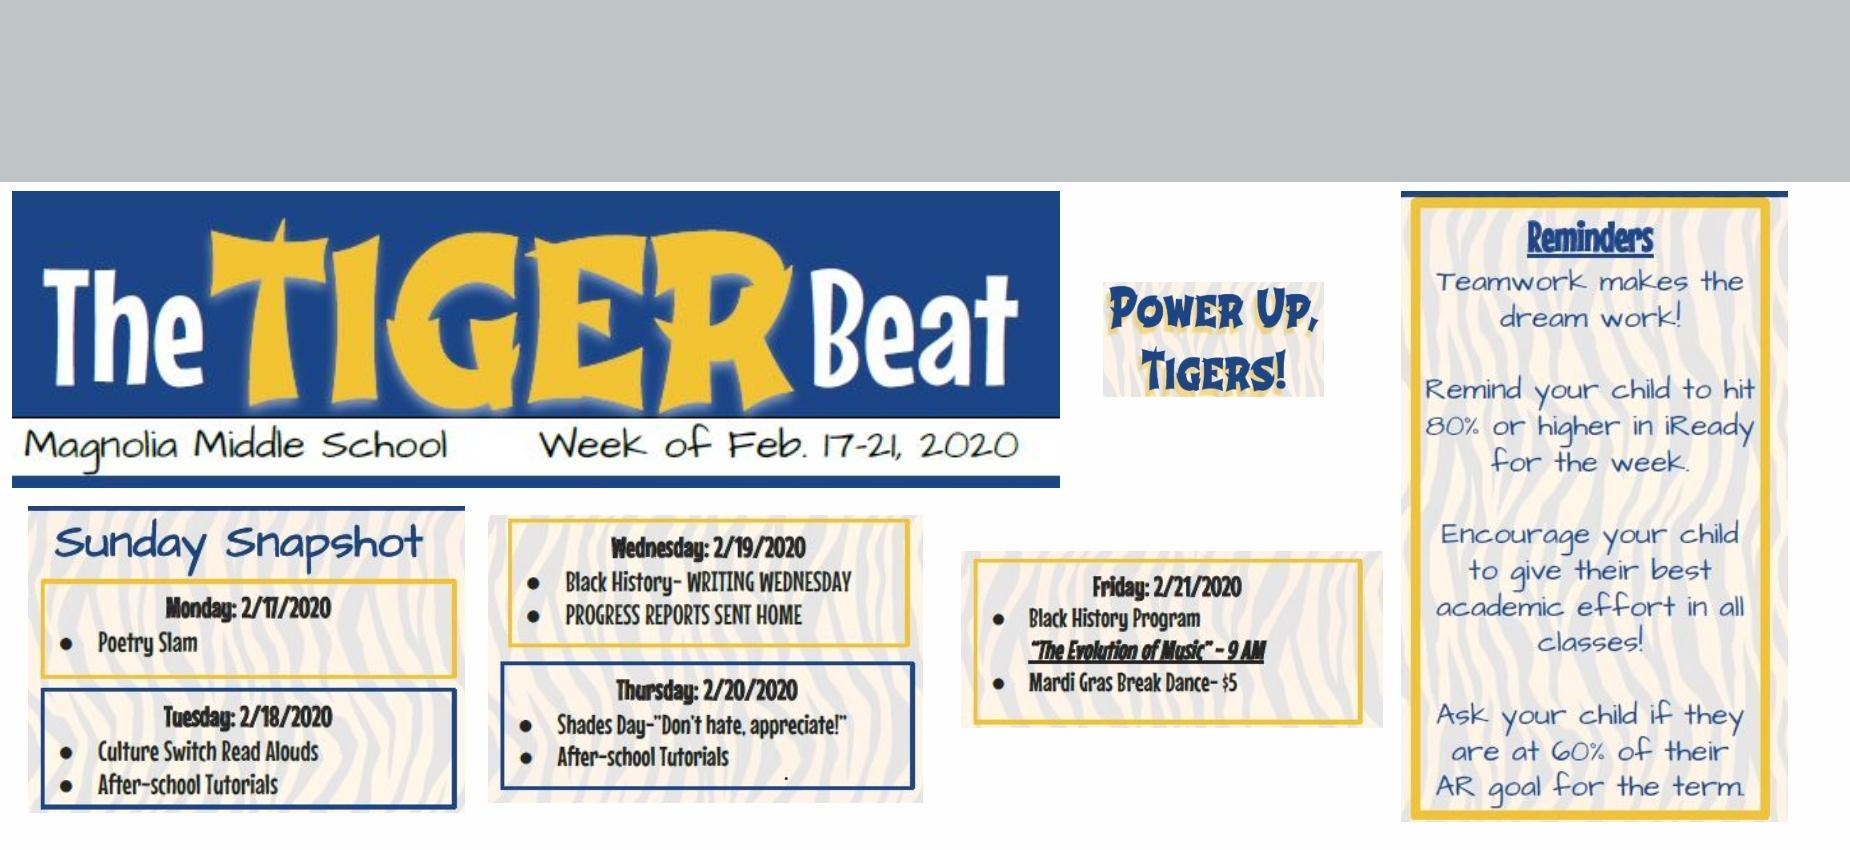 tiger beat Feb. 17-21